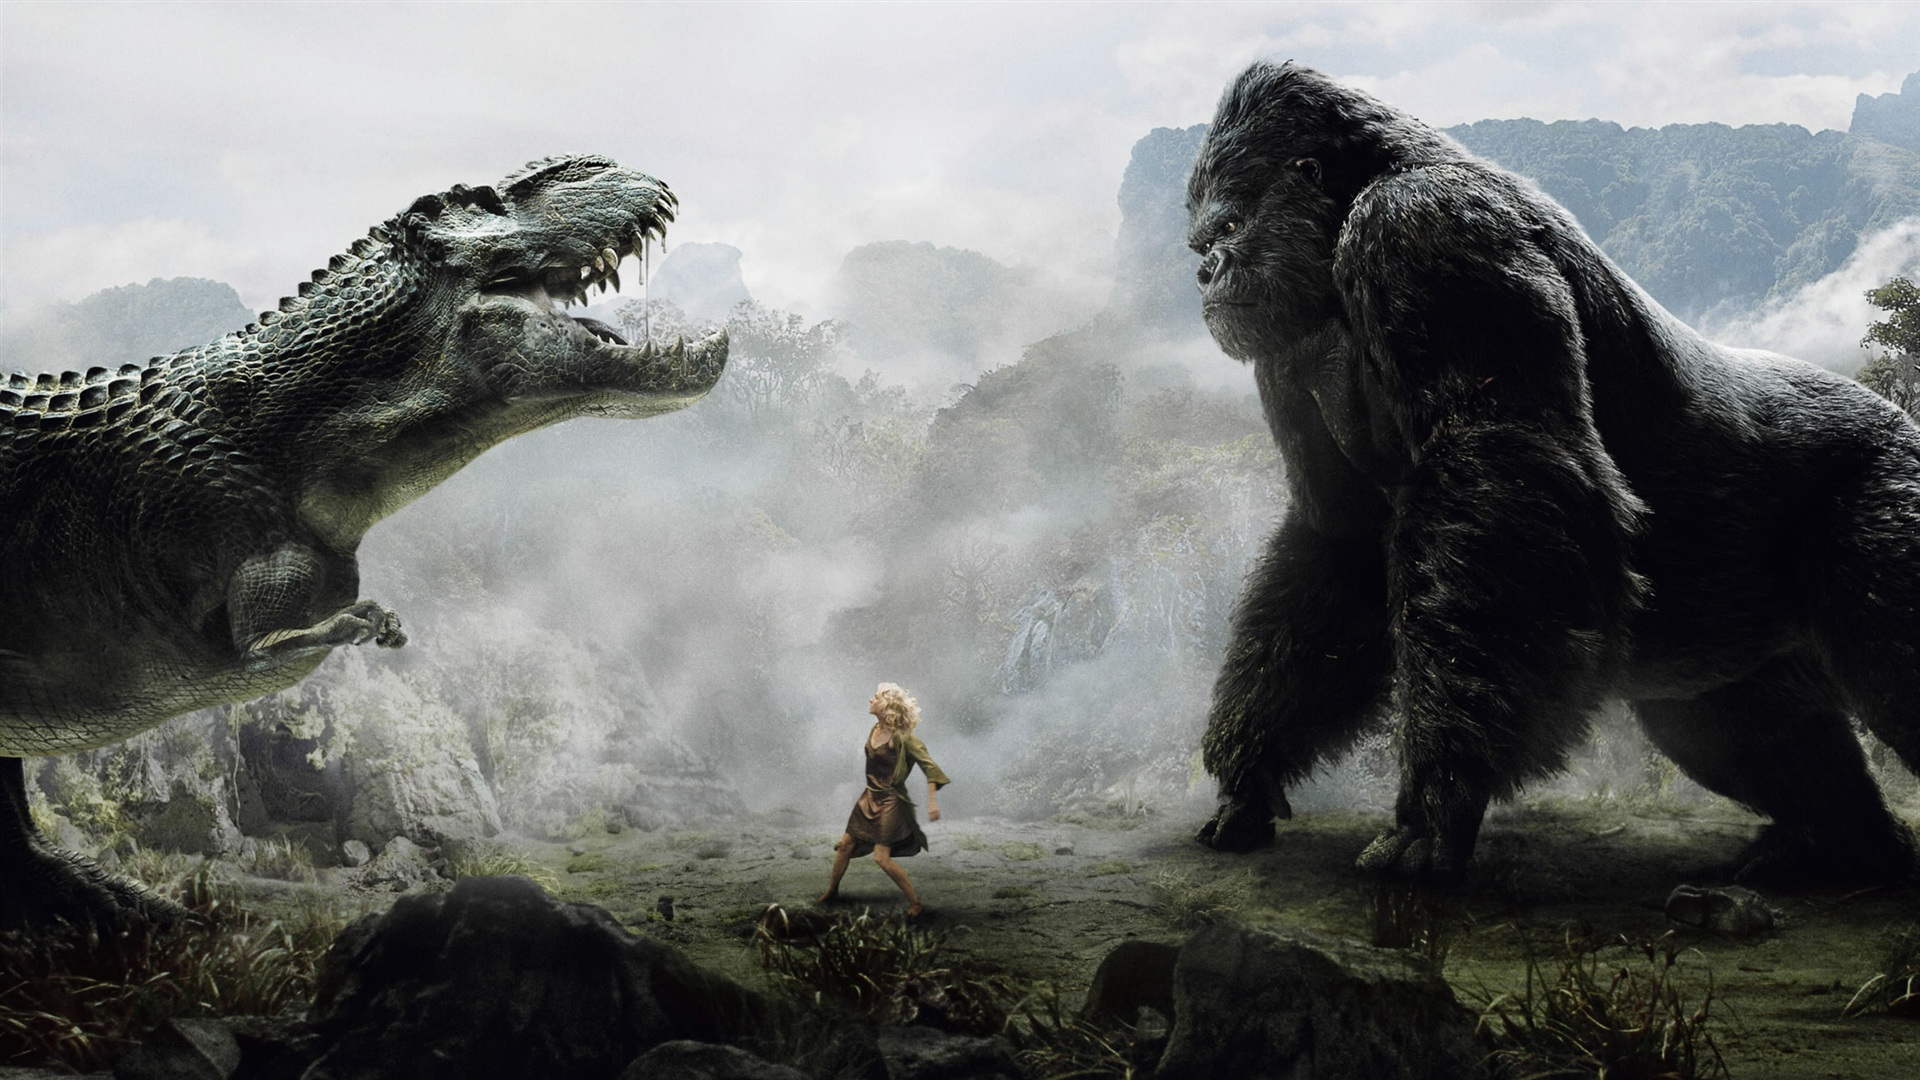 King kong hd wallpaper 1920x1080 full hd resolution wallpaper king kong hd wallpaper 1920x1080 full hd voltagebd Images